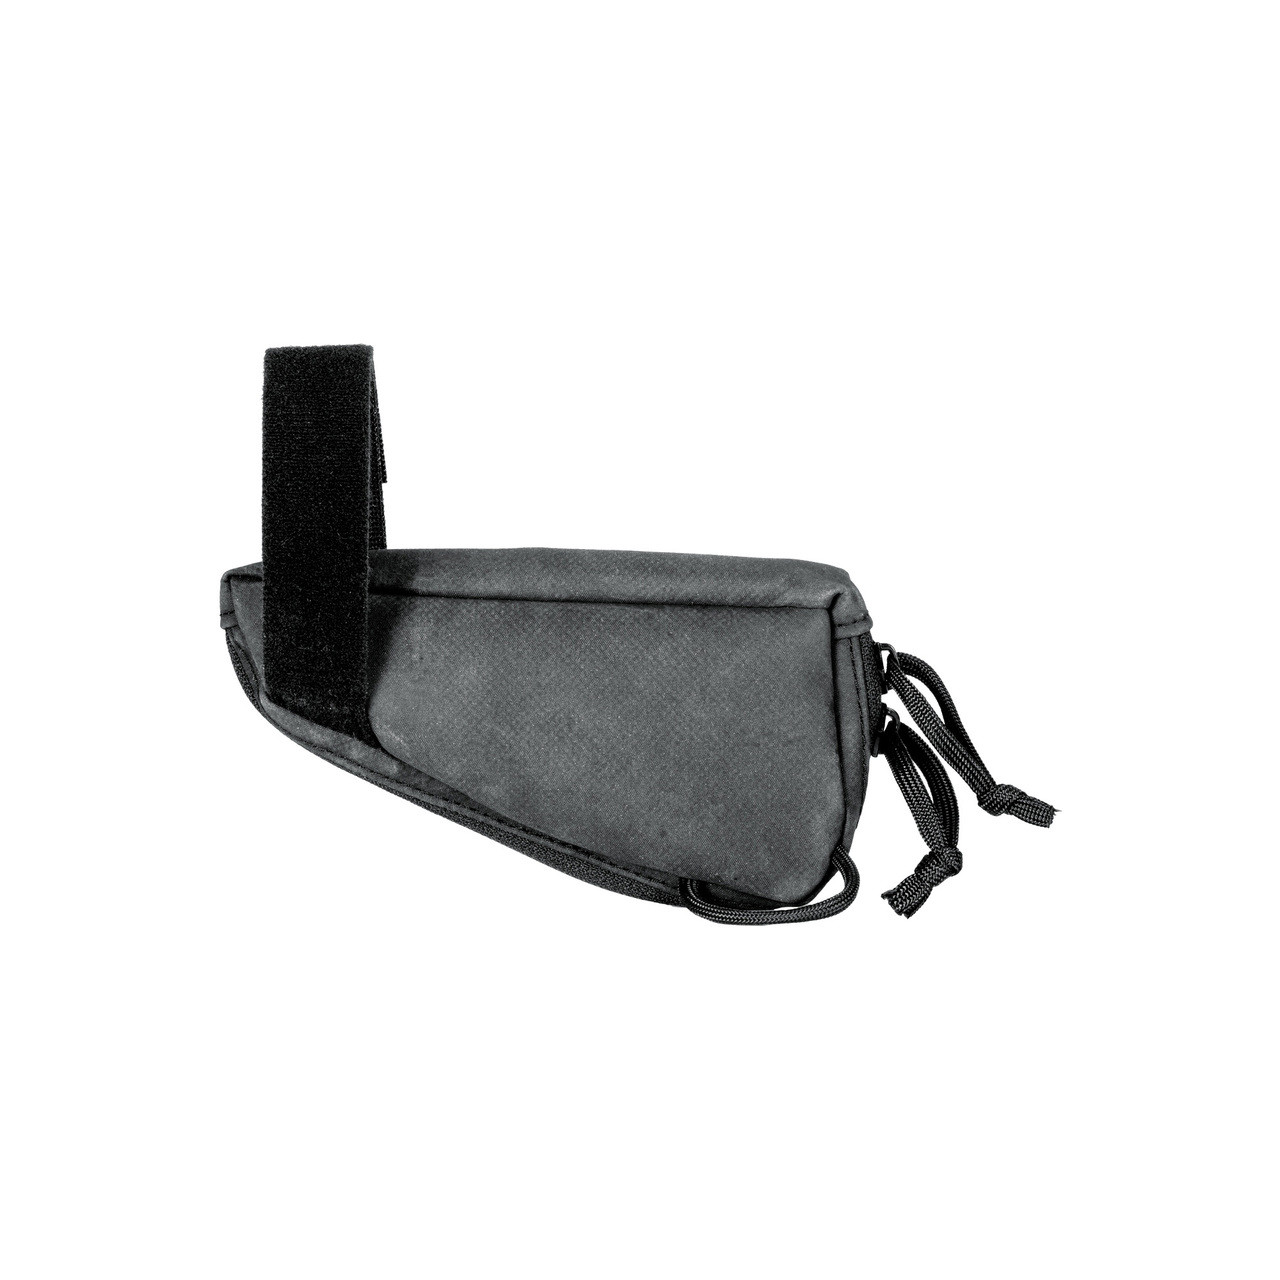 Storage Sac Sb Tactical Sac Transport And Storage Pouch Hypalon Black Sac 01 Sb Upc 699618782431